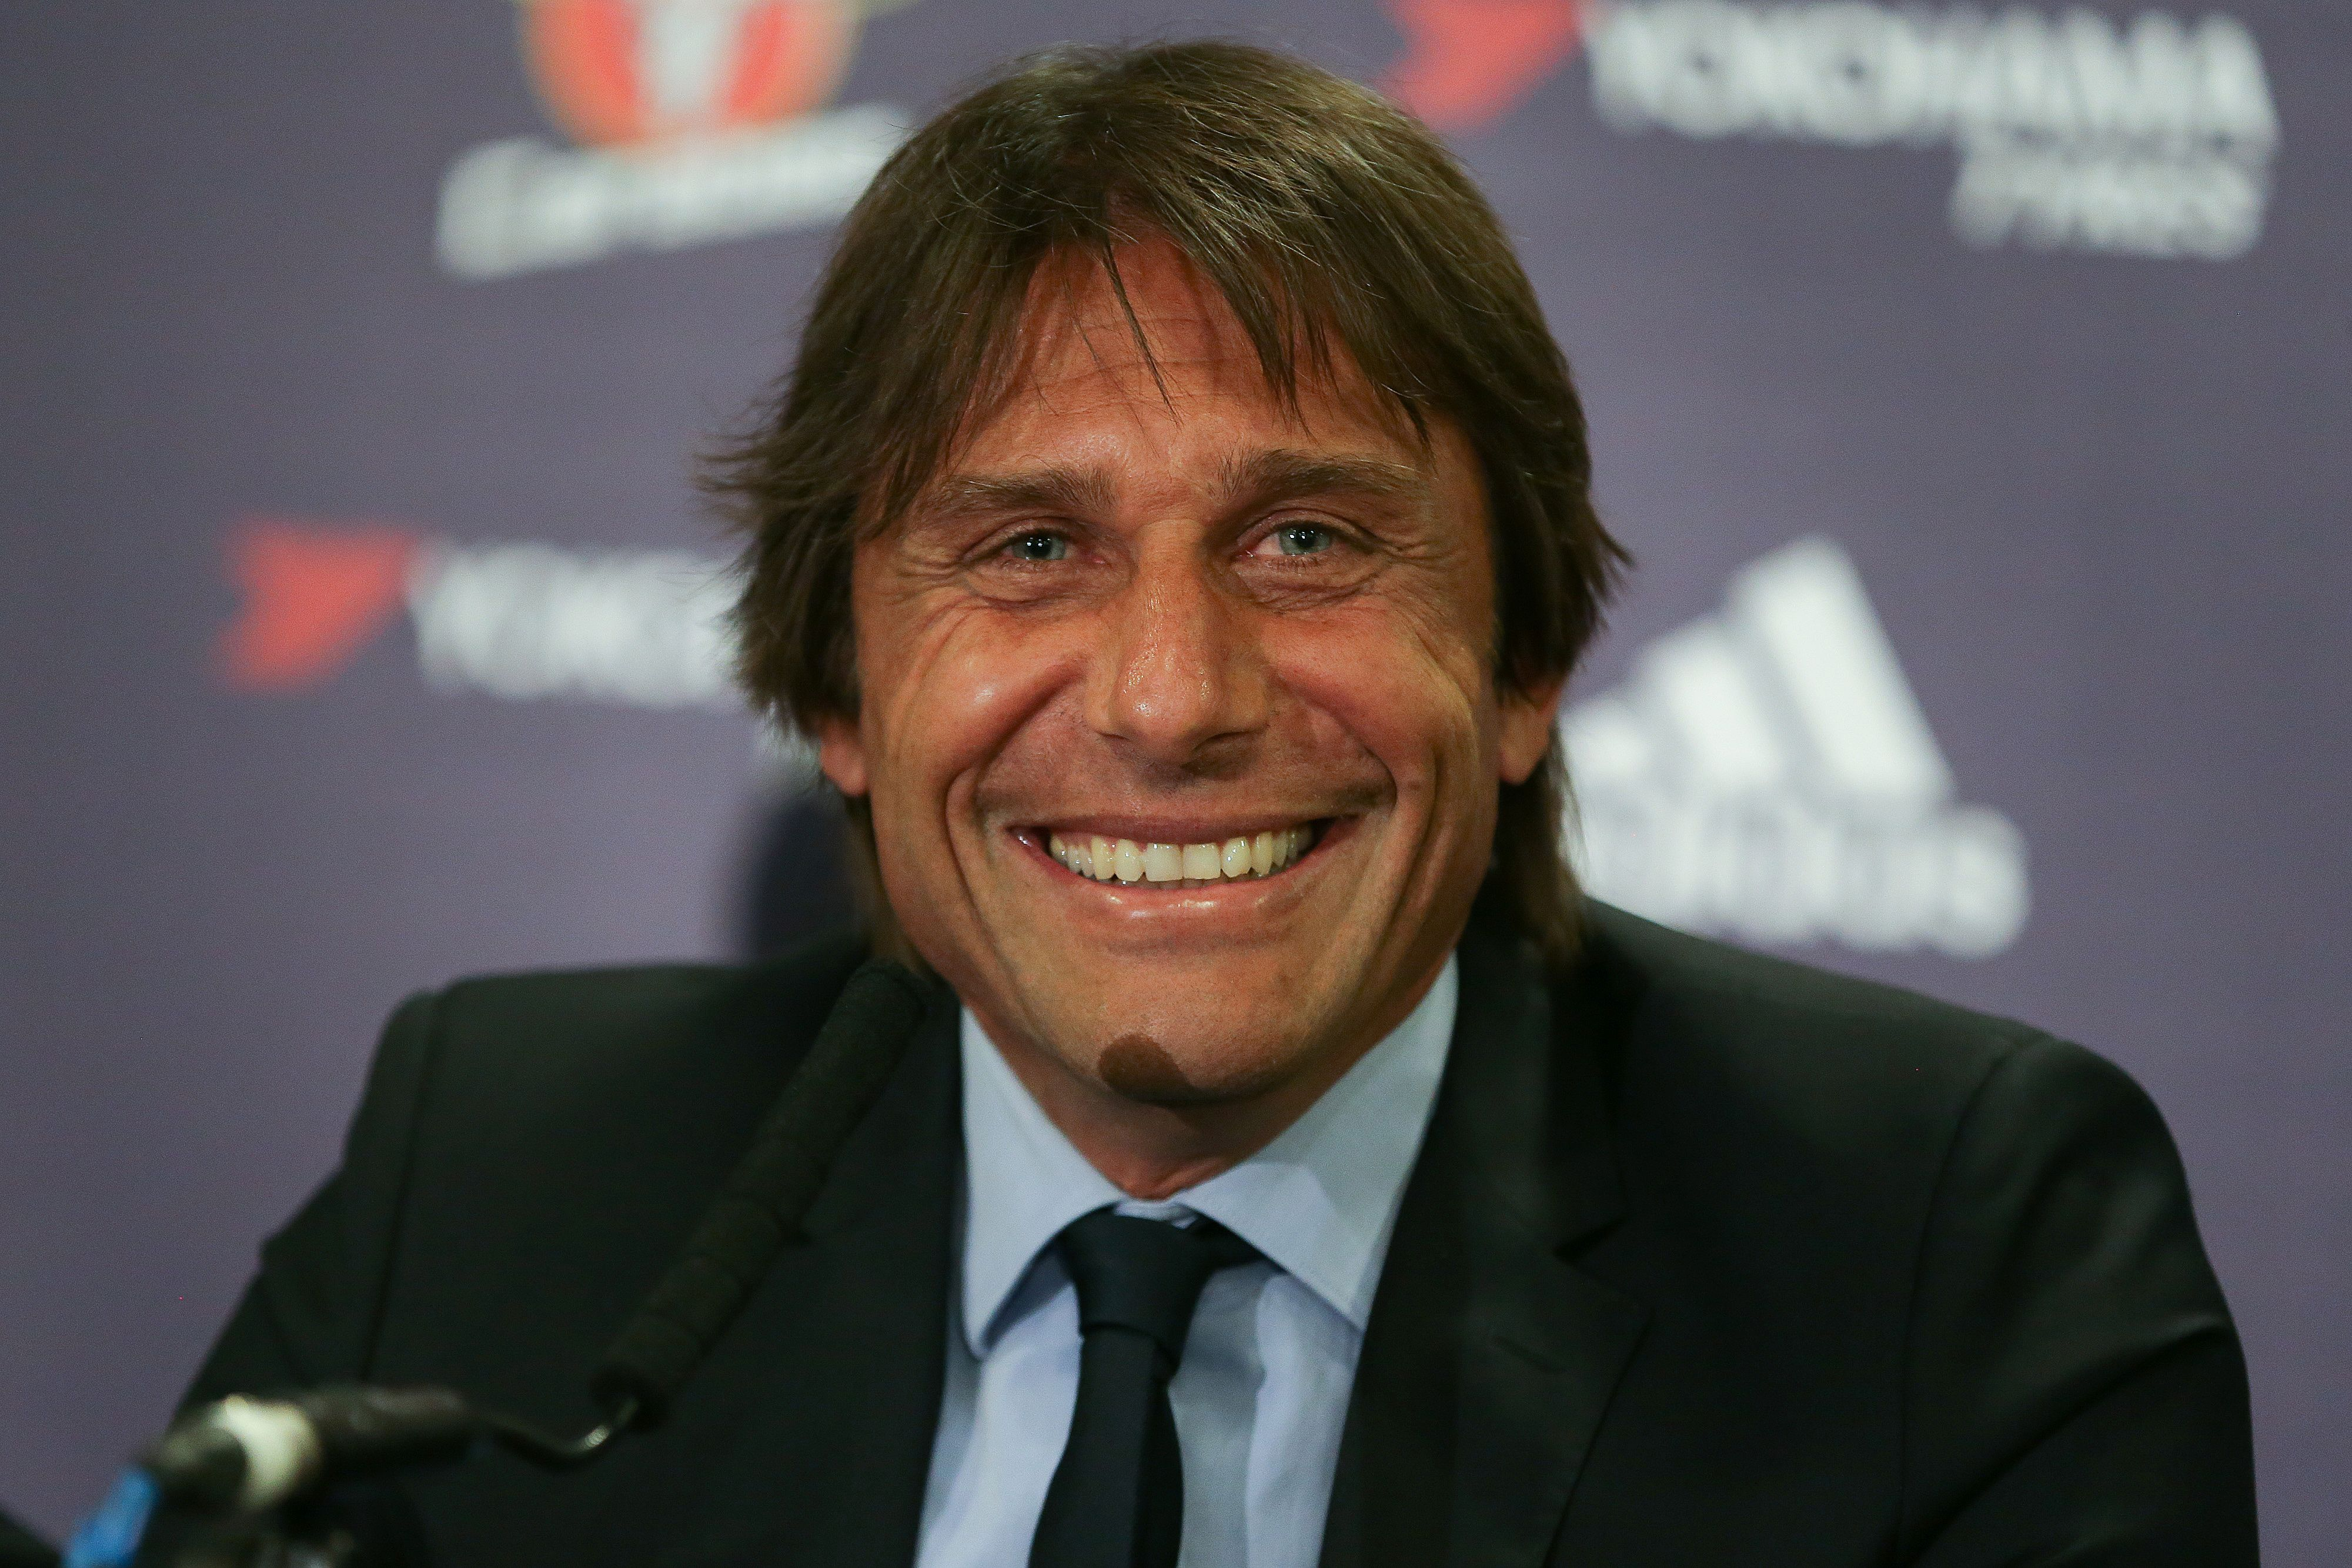 Antonio Conte wants to sign Romelu Lukaku and Joao Cancelo for Chelsea this summer